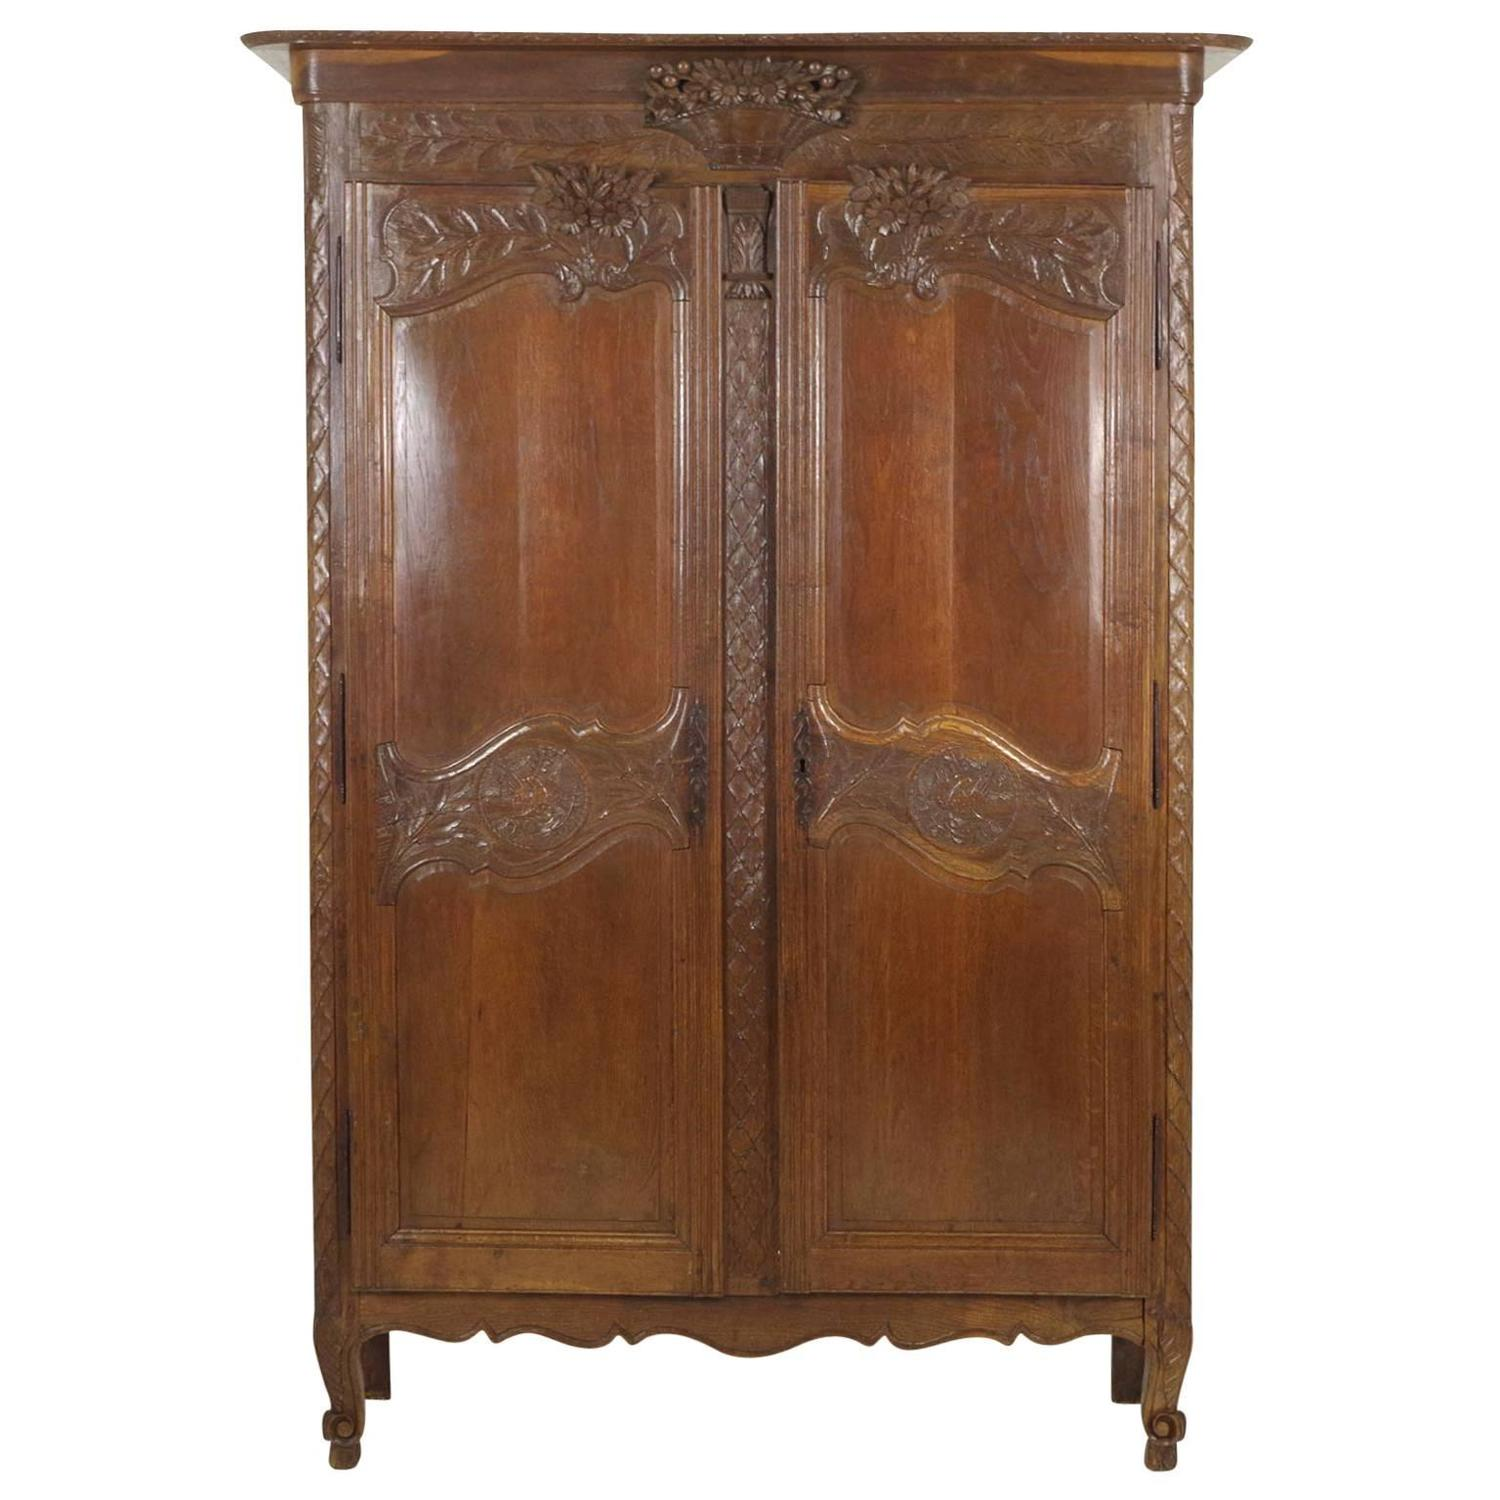 antique french normandy marriage armoire wardrobe 1840 at. Black Bedroom Furniture Sets. Home Design Ideas